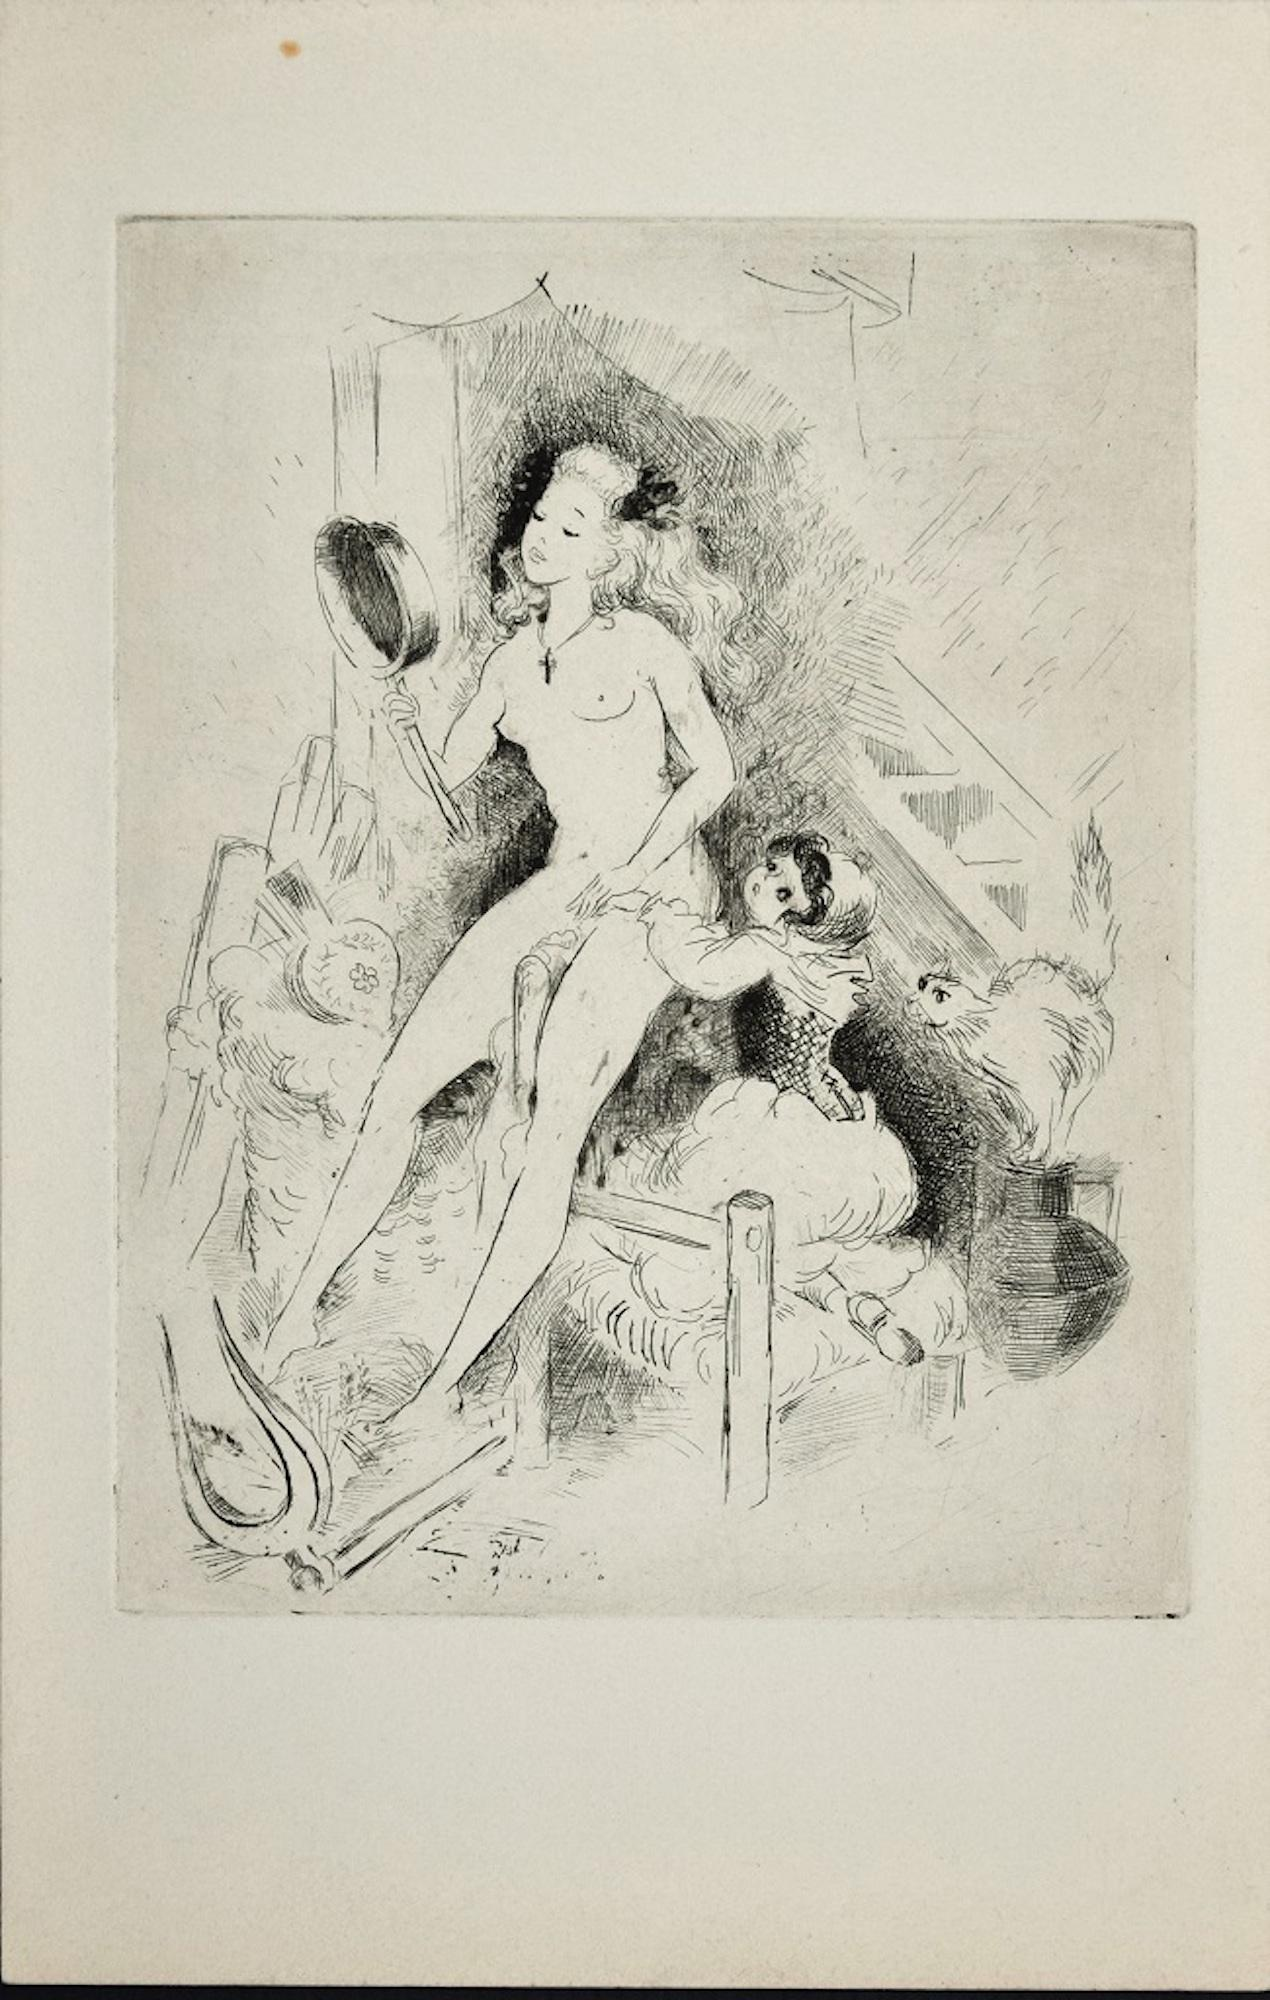 Erotic Scene - Original Etching ad Drypoint by A. Doré -1950s